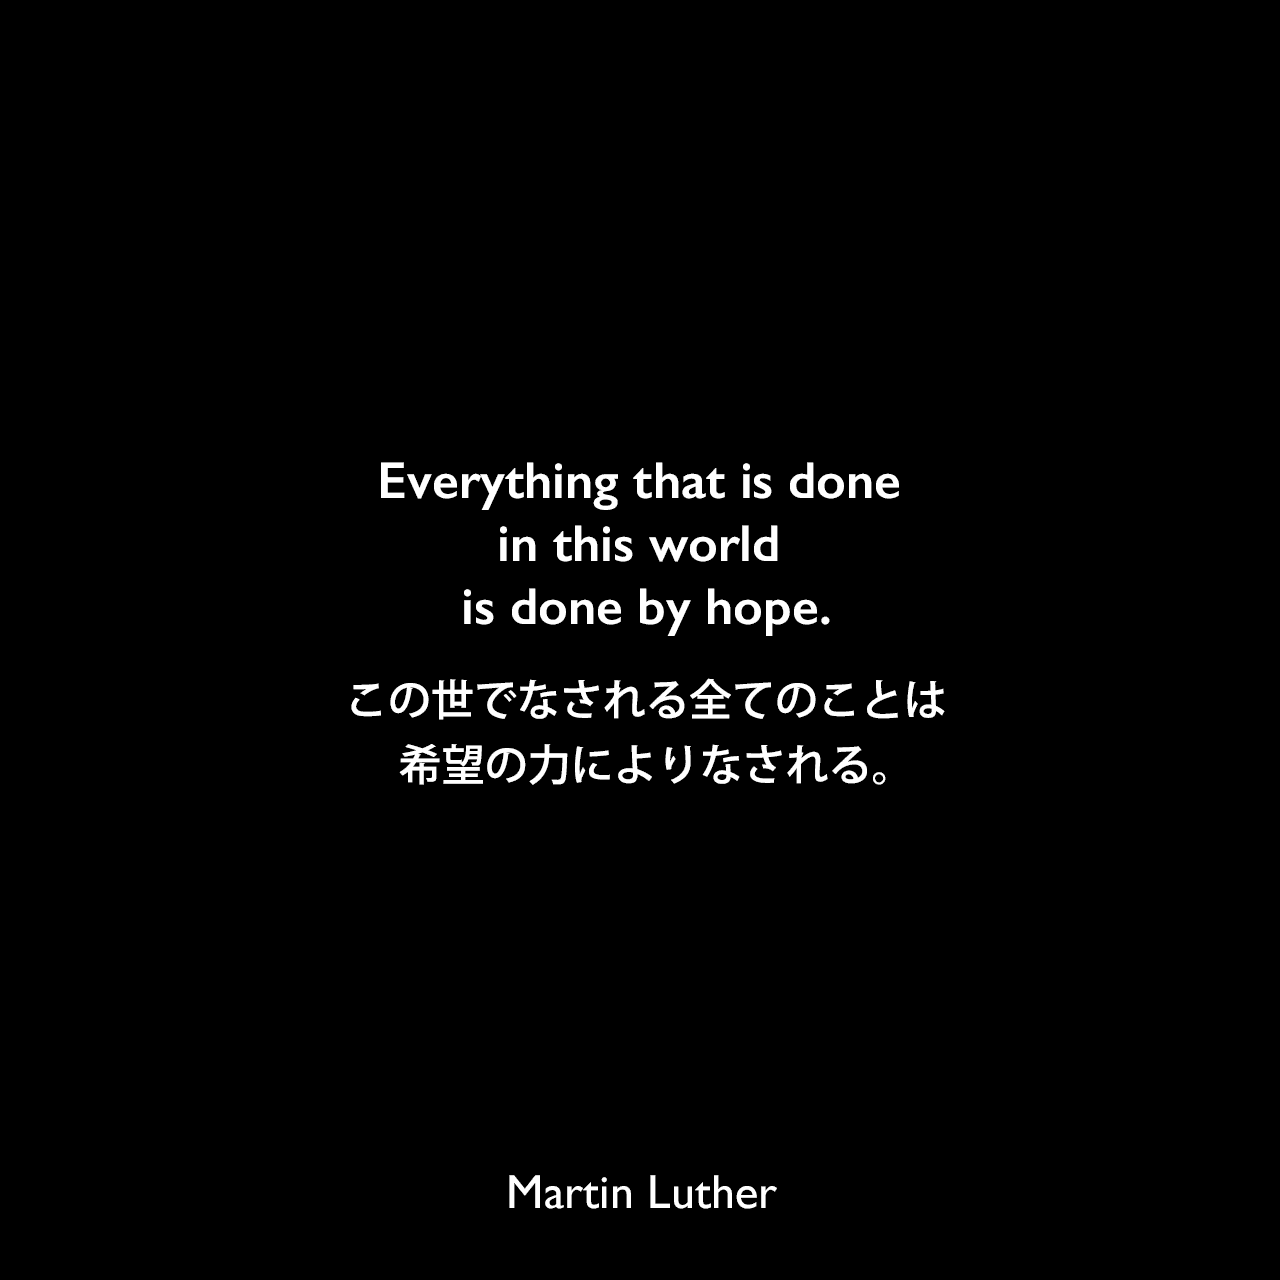 Everything that is done in this world is done by hope.この世でなされる全てのことは、希望の力によりなされる。Martin Luther